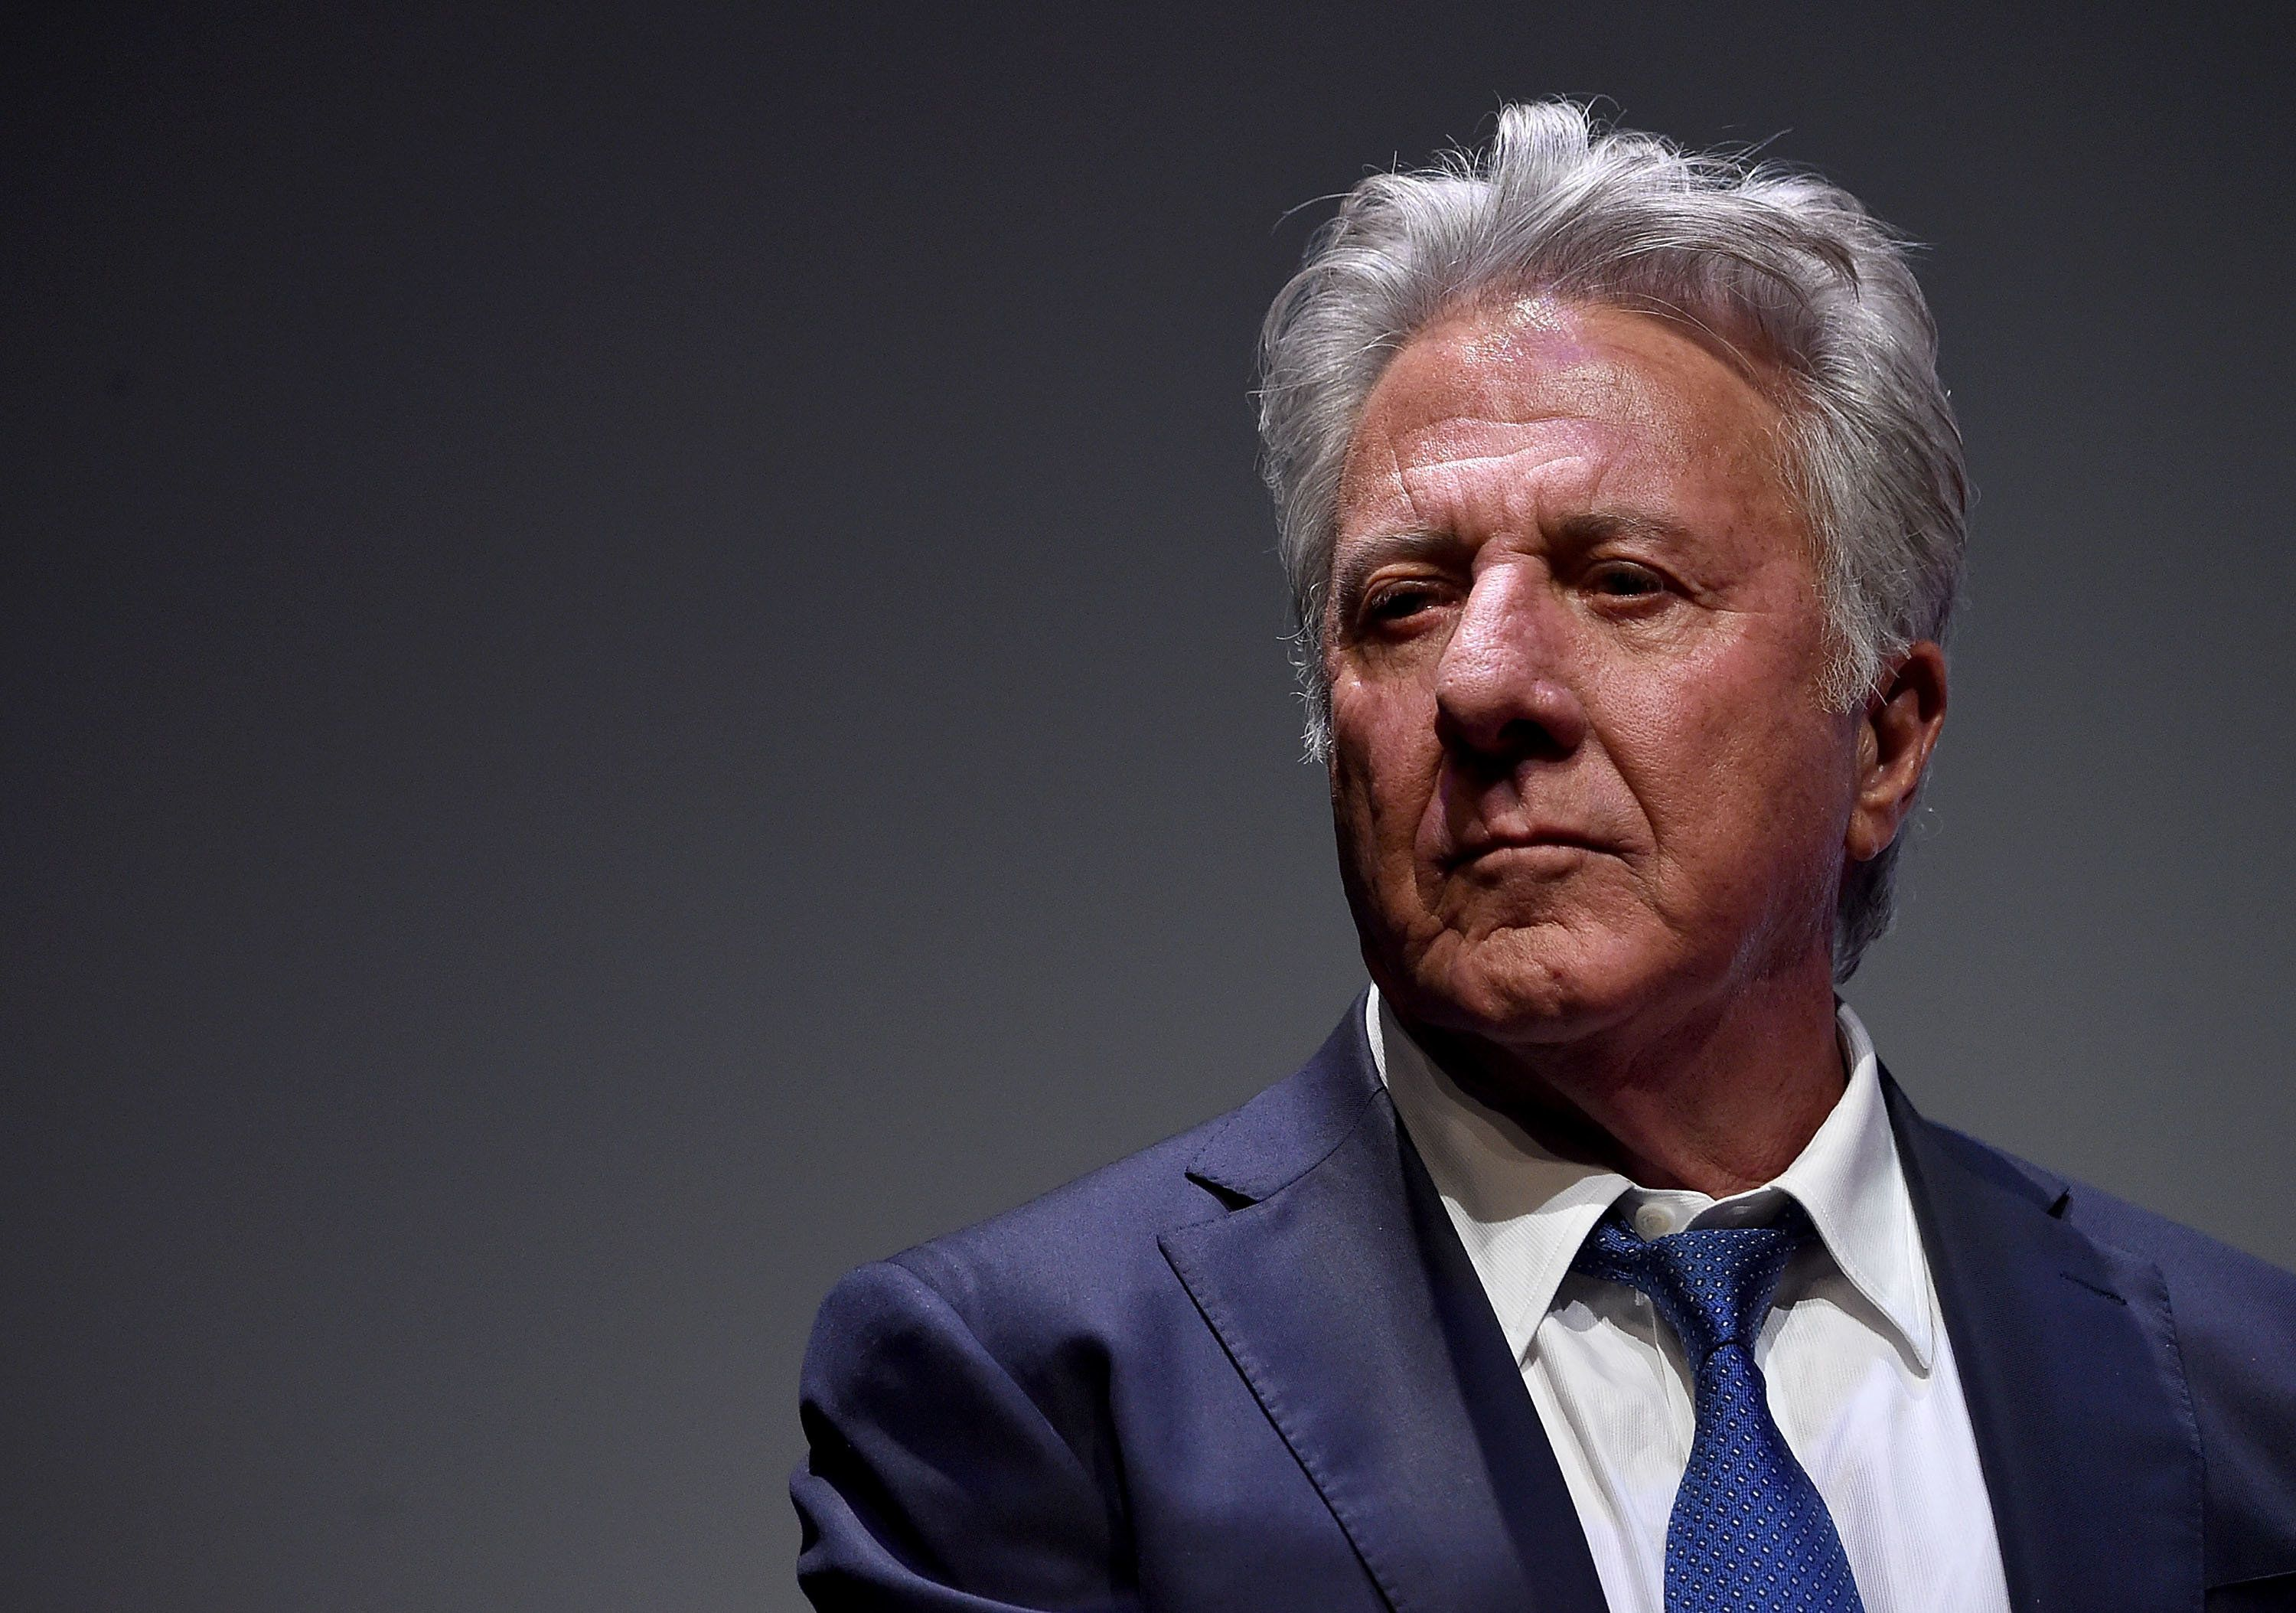 Dustin Hoffman accused by 3 more women of sexual impropriety